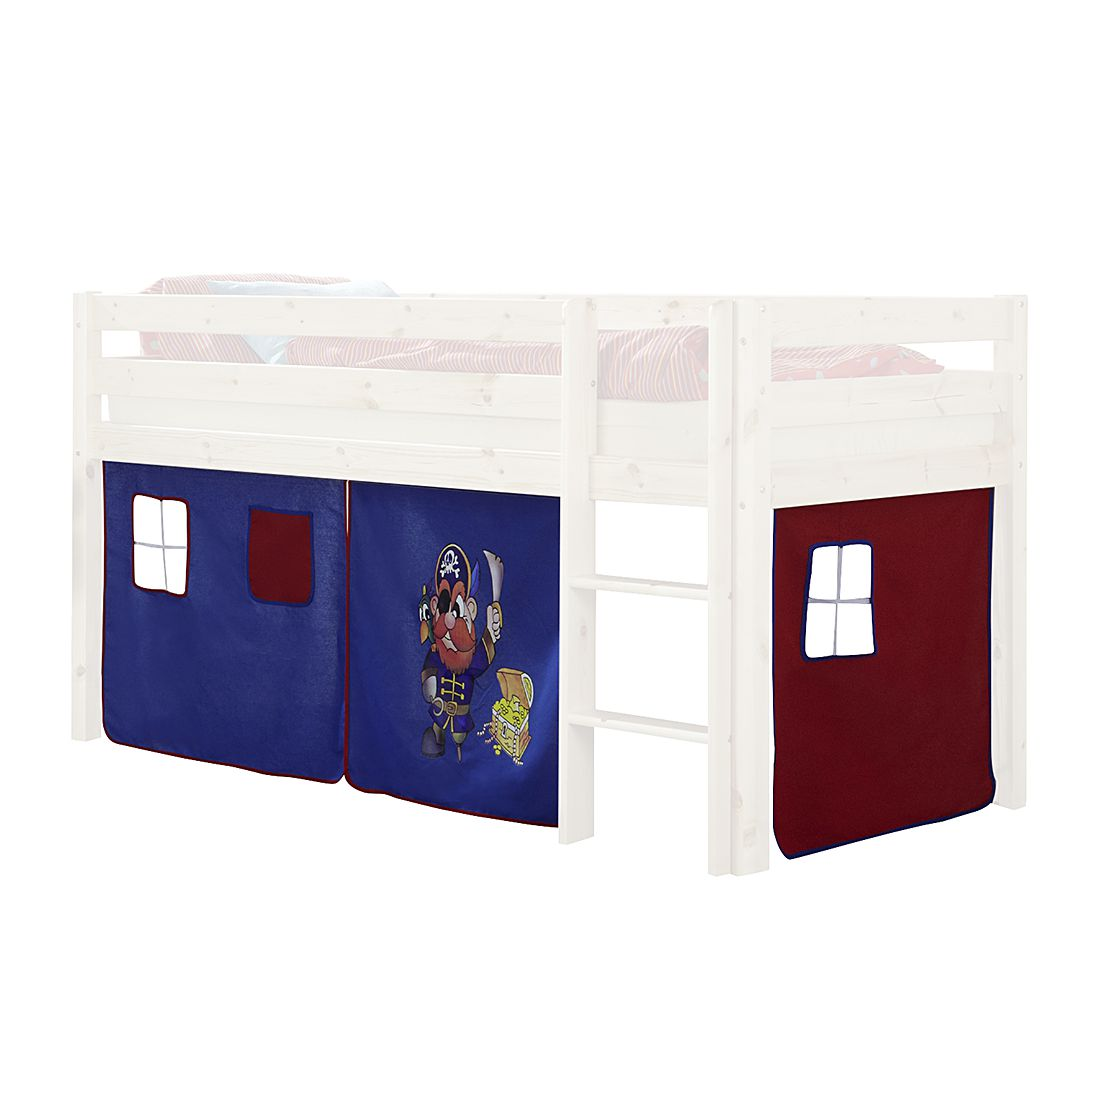 Gordijn Merlin - blauw piratenmotief/rood, Kids Club Collection